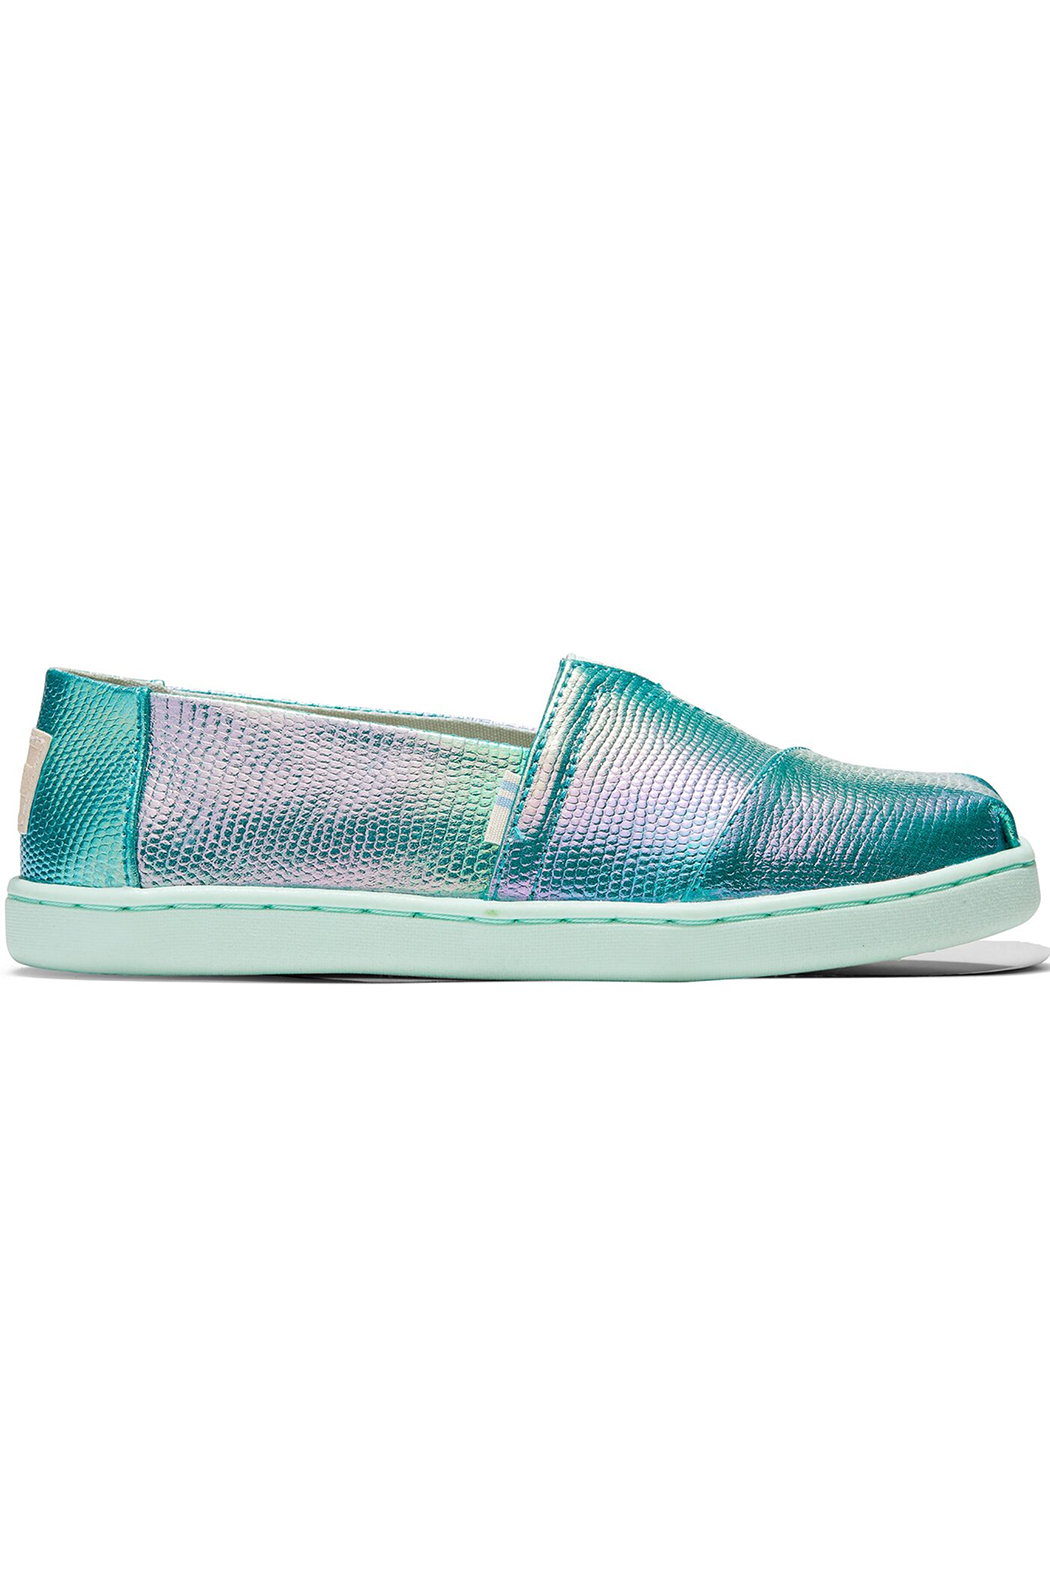 TOMS Green Iridescent Snake Youth Classics - Main Image